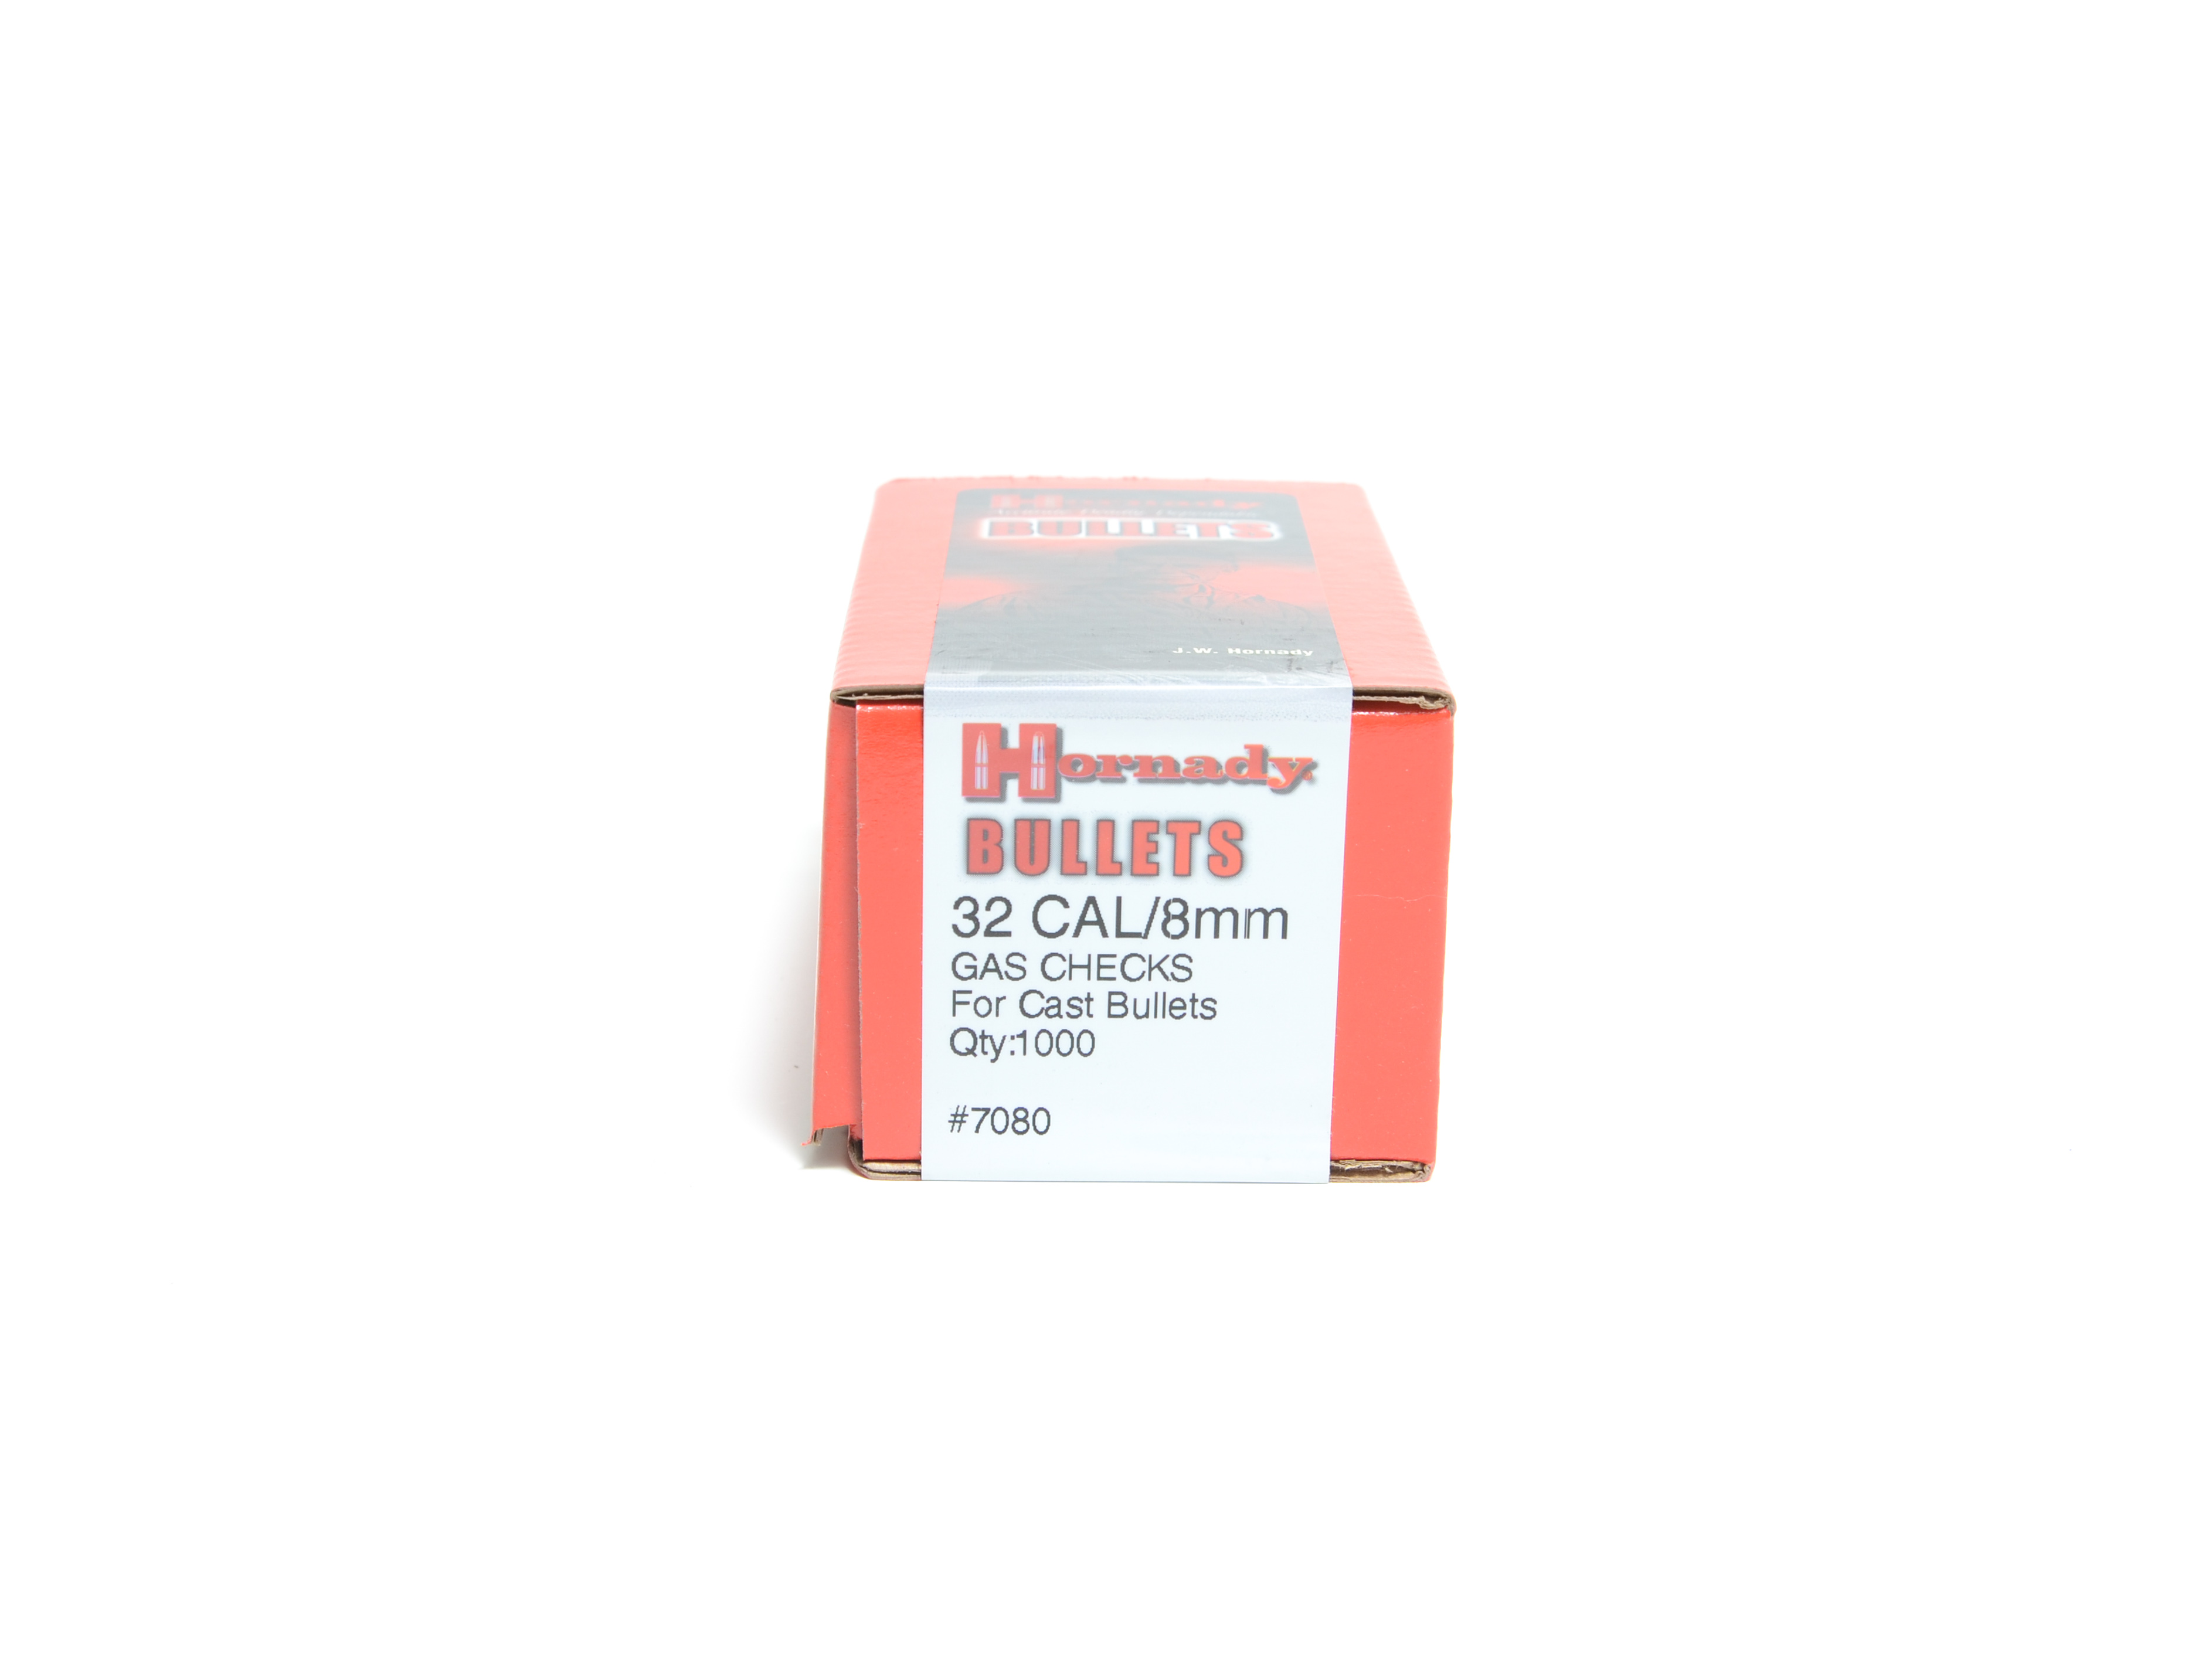 Hornady Gas Check 32 Cal8mm Powder Valley